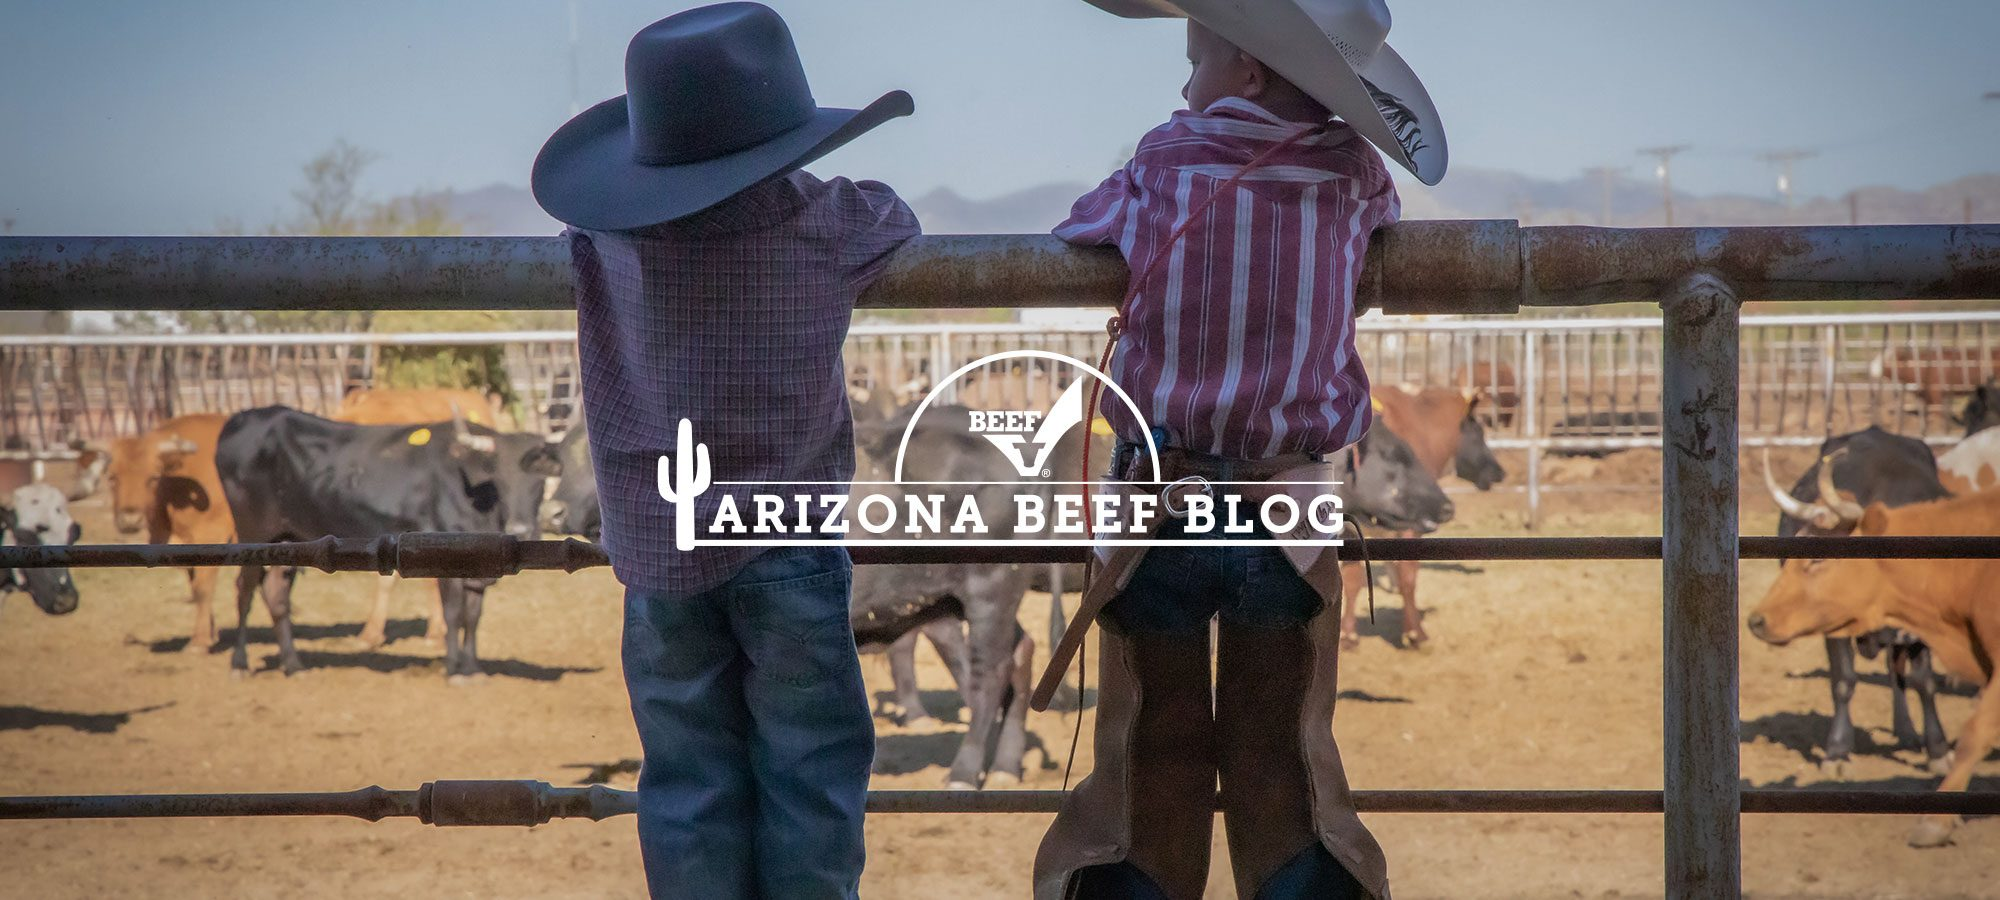 Arizona Beef Blog